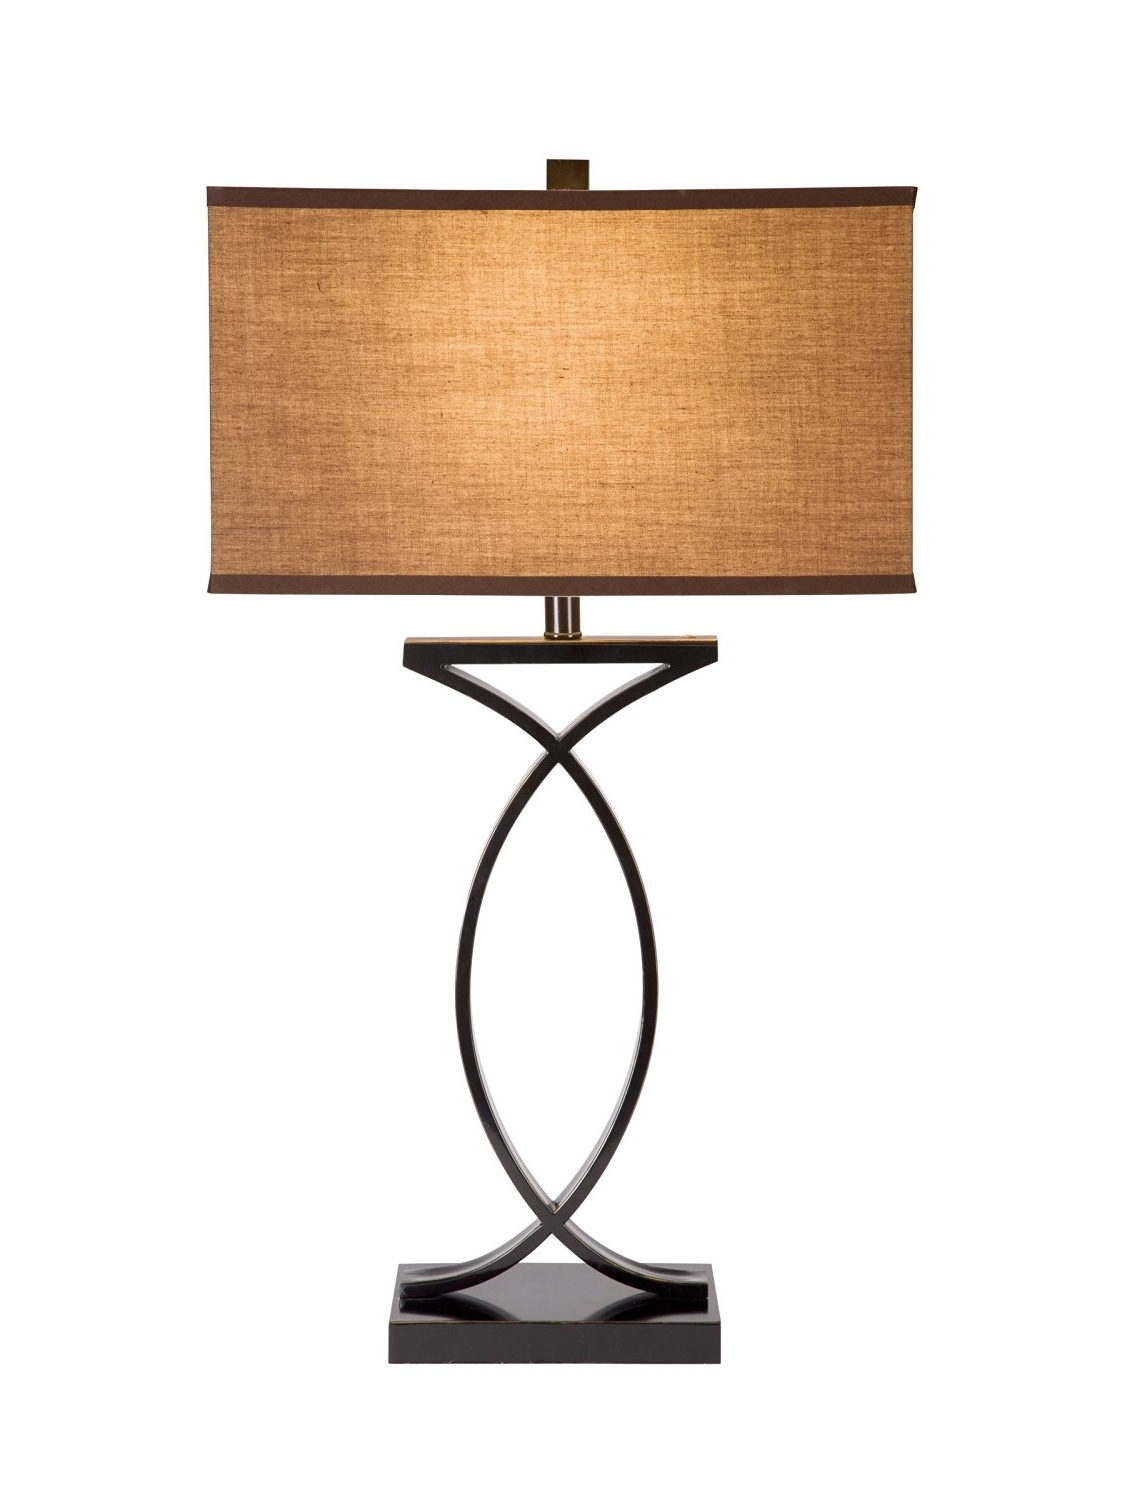 Gold Living Room Table Lamps With Most Current Home Design. Black Table Lamps: Cute Black With Gold Highlights (Gallery 9 of 20)